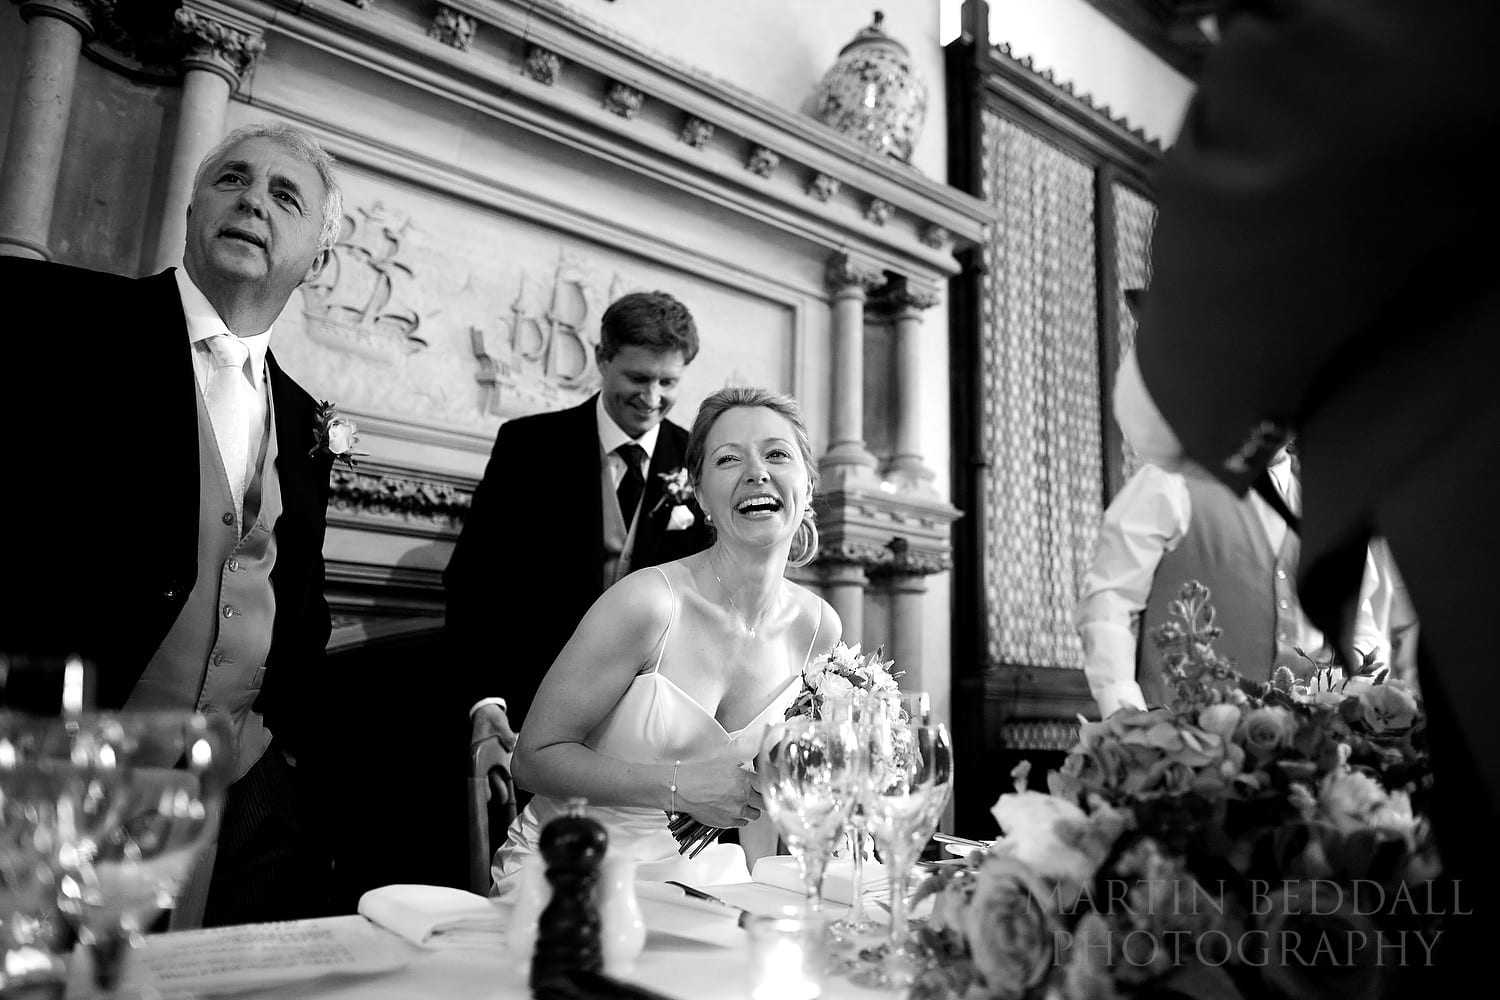 Wedding photography in 2011 at The Elvetham Hotel